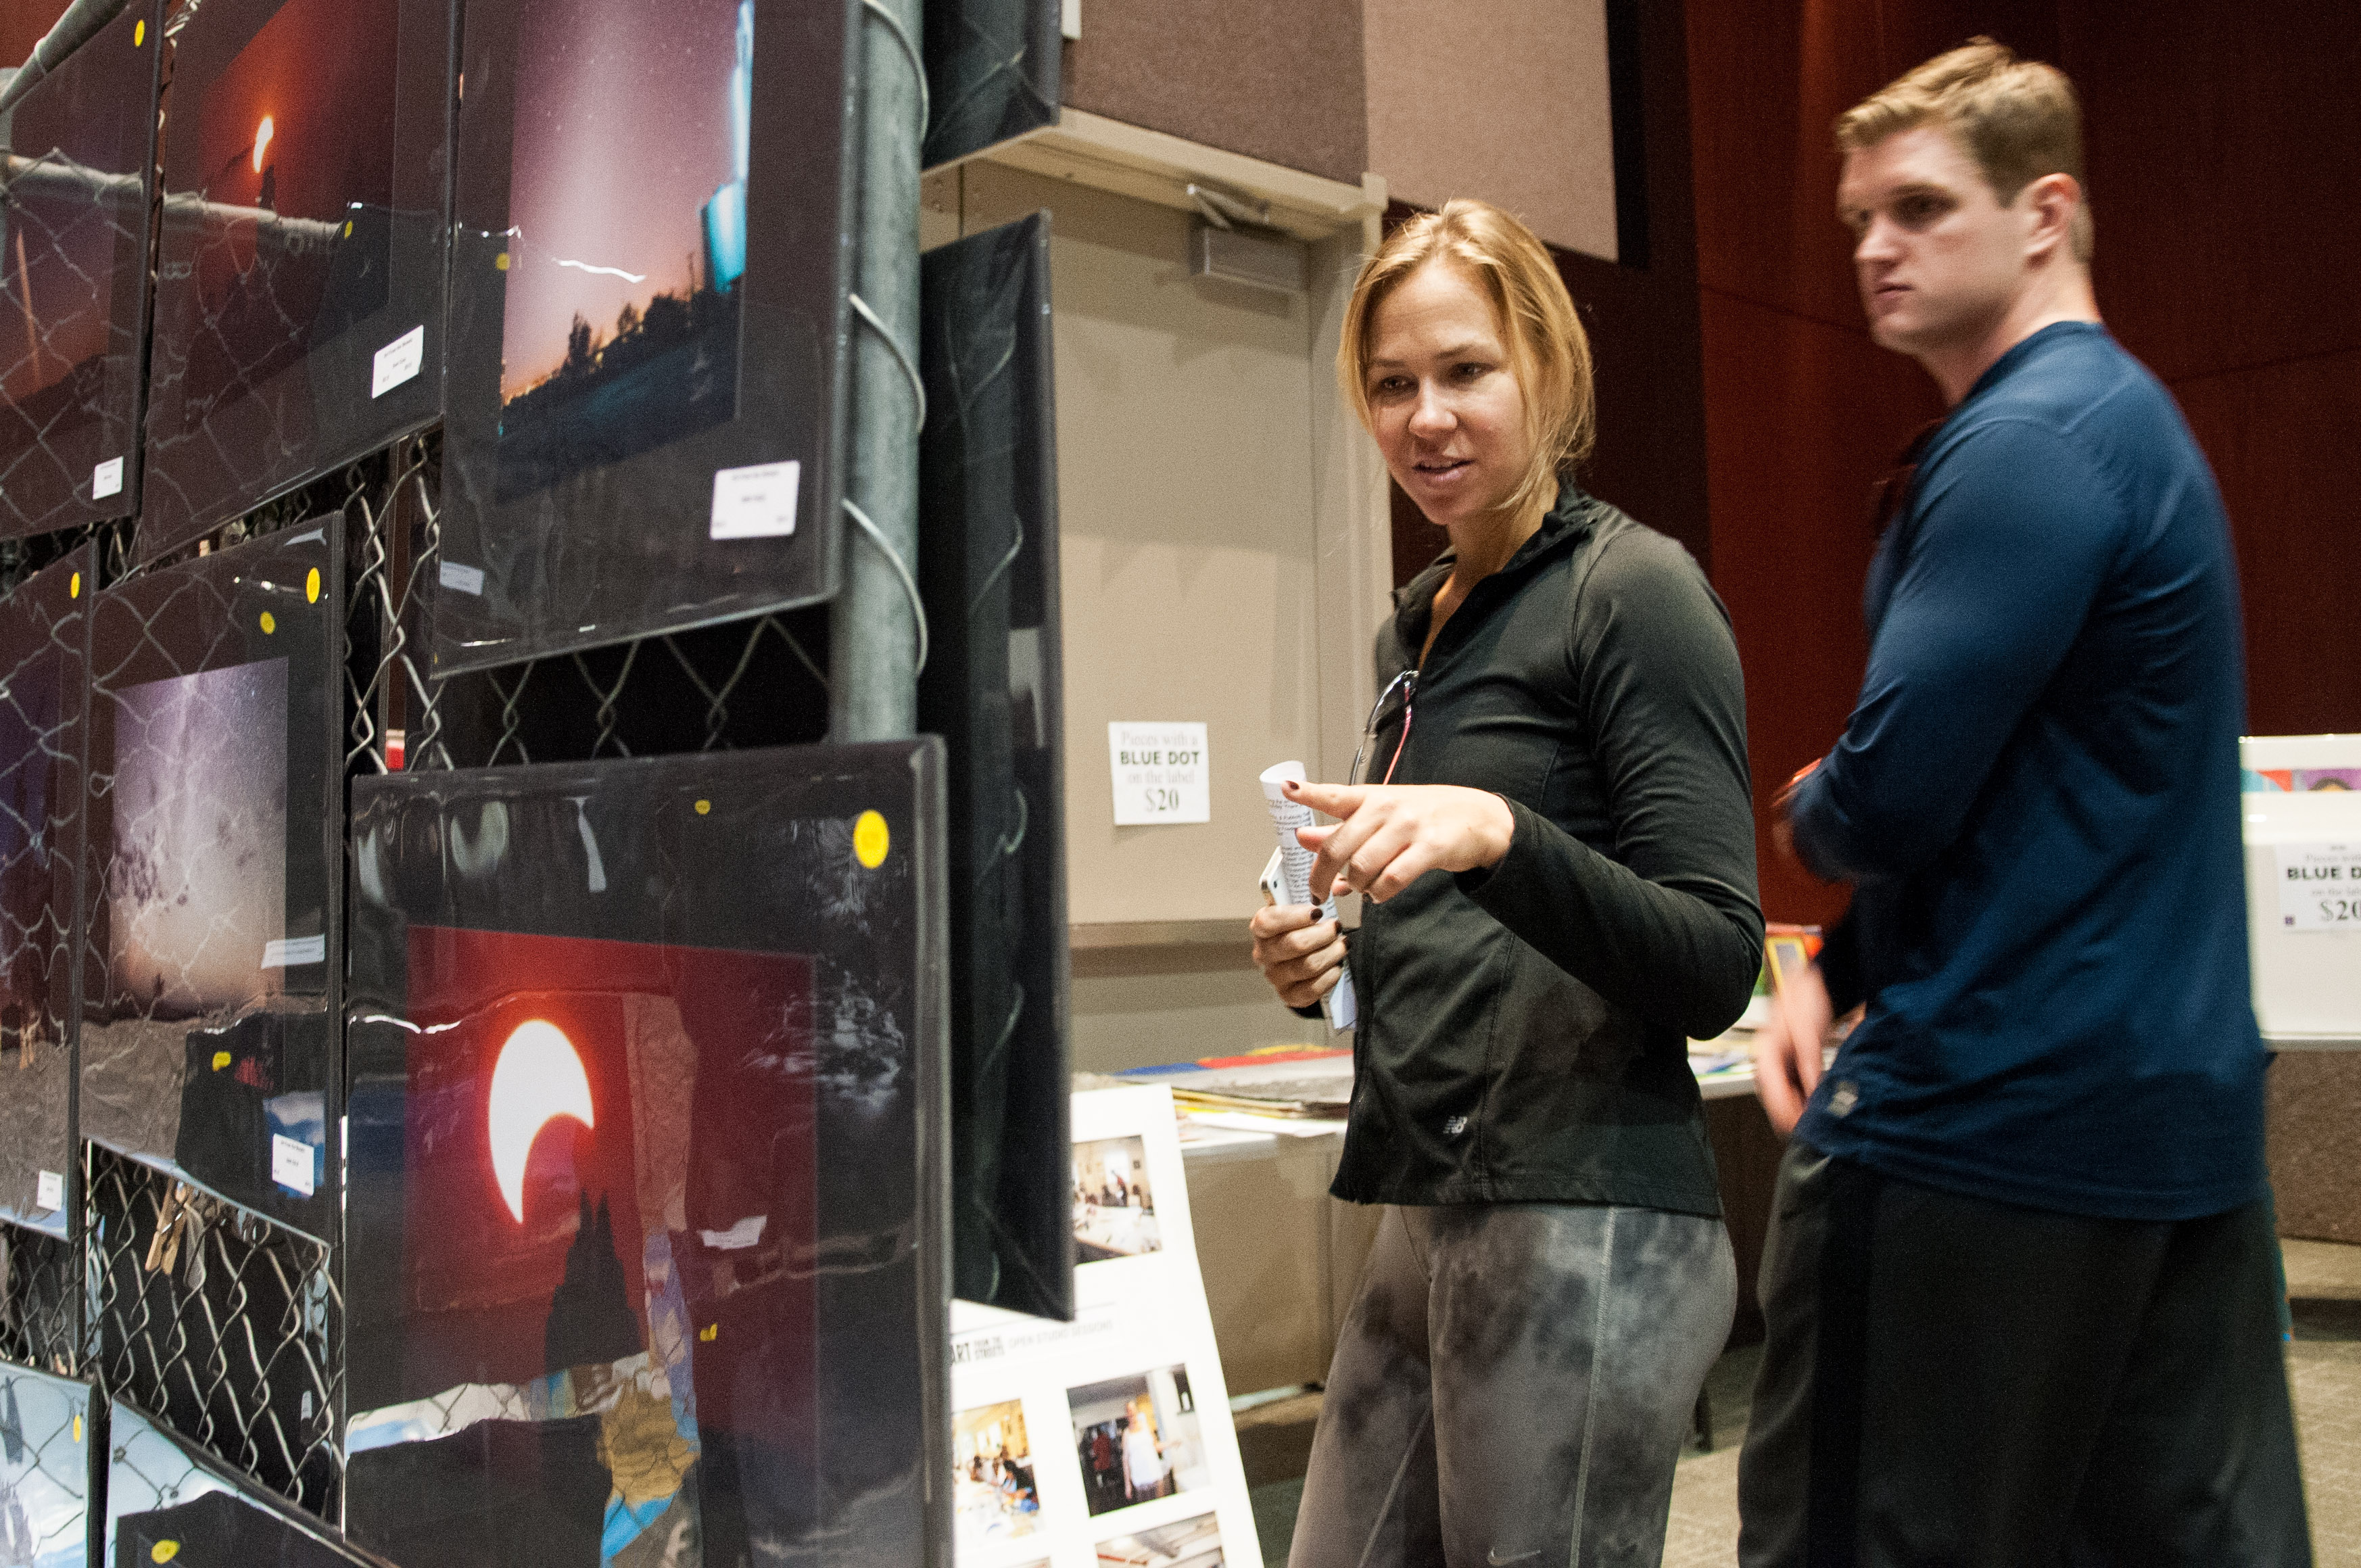 People are looking at the various art pieces for sale at the Austin Convention Center. Photo by Skylar Isdale